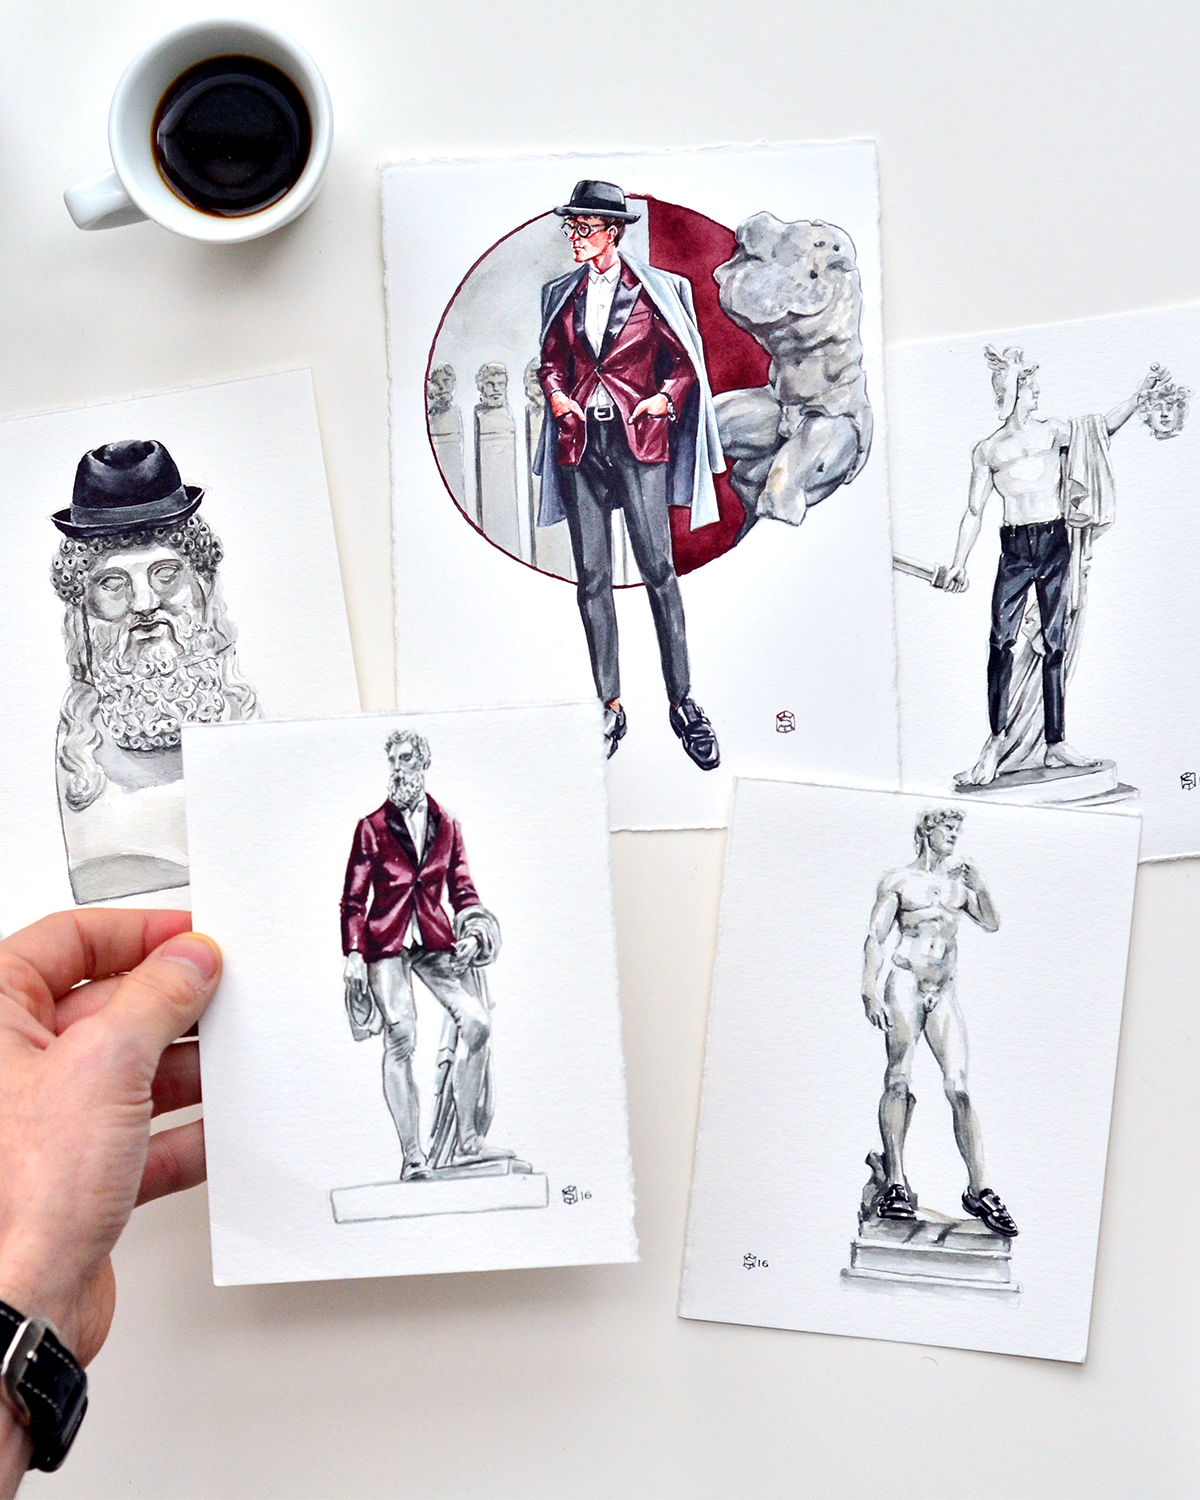 Menswear illustrations of Italian sculptures wearing clothing from Express Men